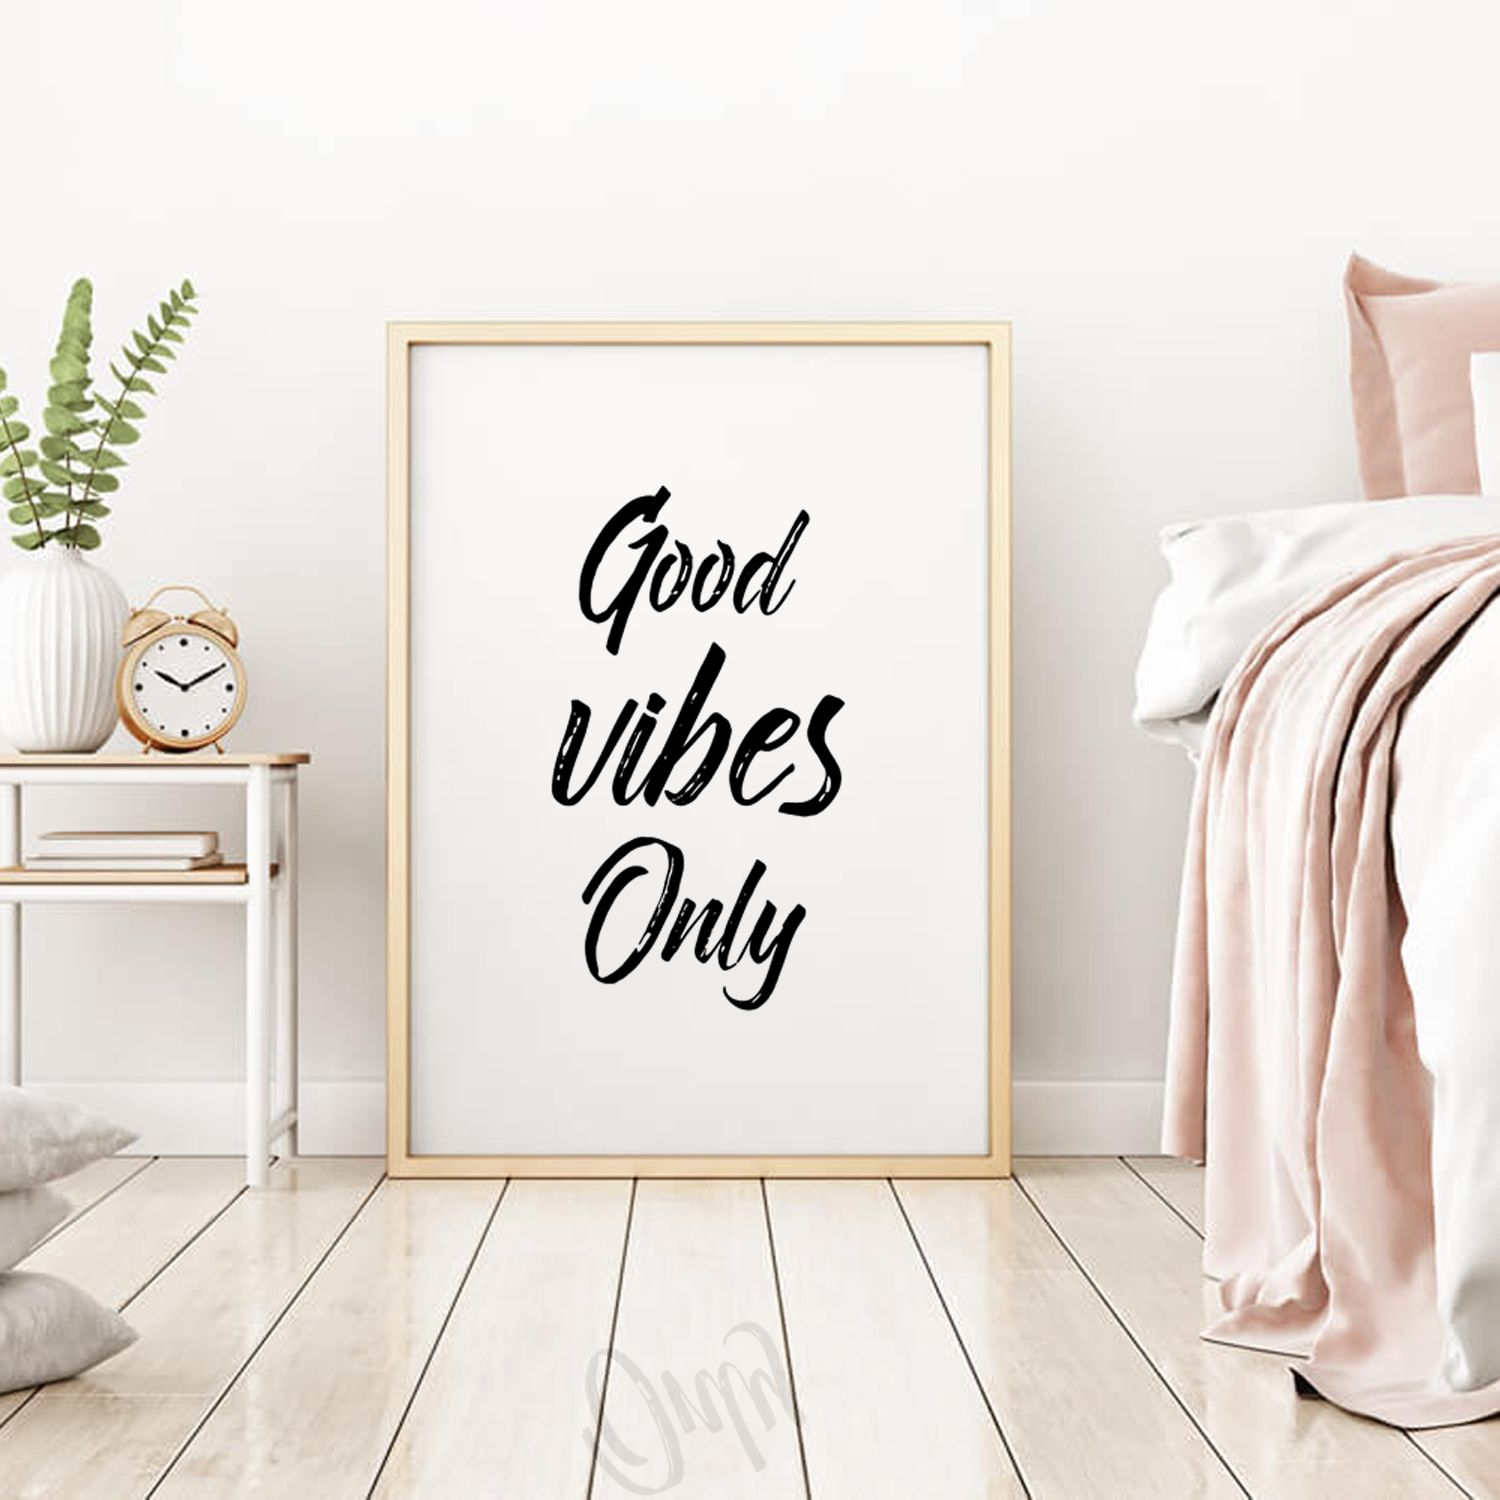 Office Decor Digital Download Motivational Poster Good Vibes Only Inspirational Art Print Sign Printable Wall Art Quotes Positivity Sign Wall Printables Printable Decor Wall Decor Bedroom